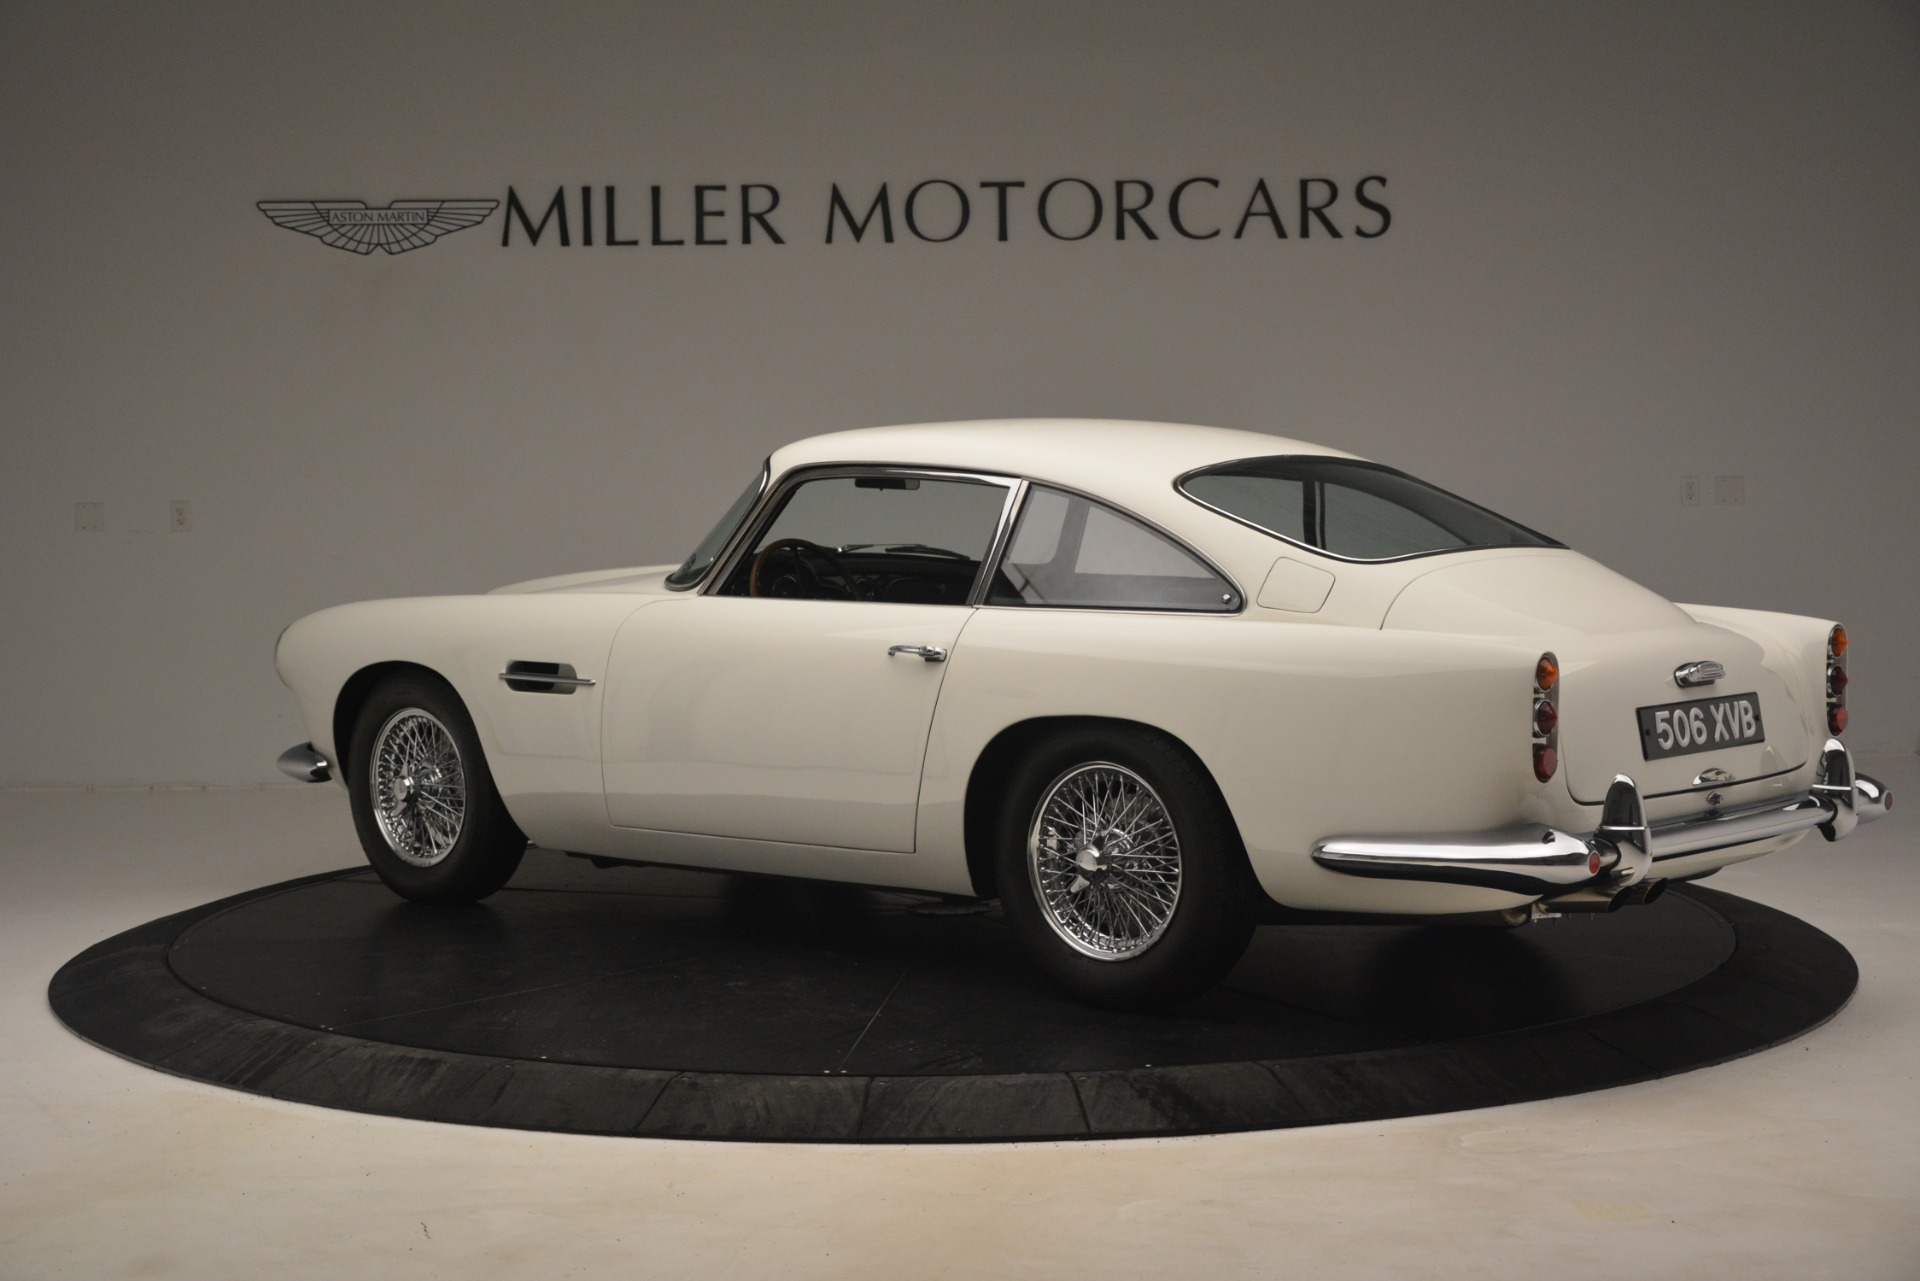 Used 1961 Aston Martin DB4 Series IV Coupe For Sale In Greenwich, CT 3186_p4